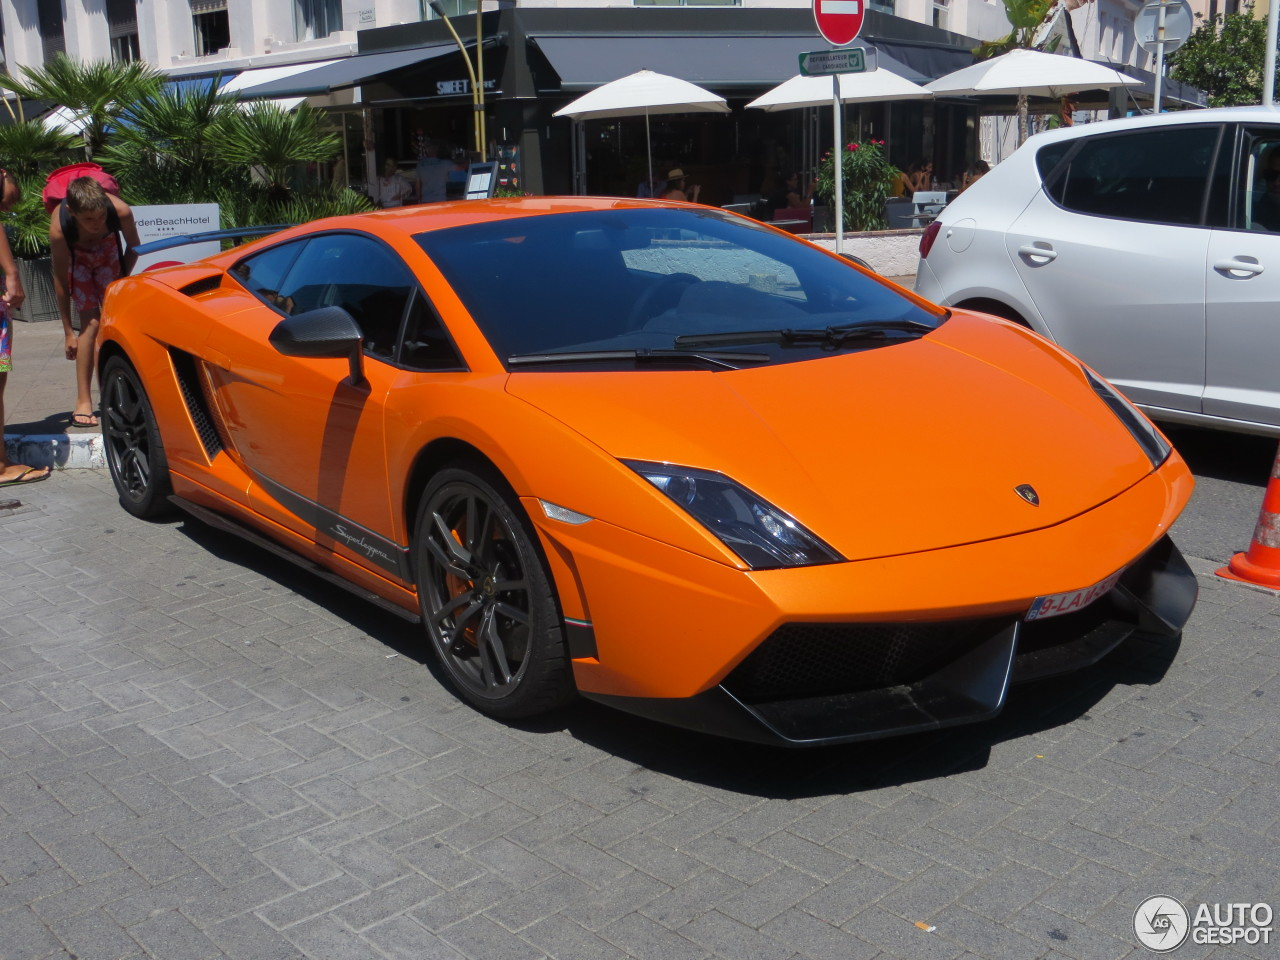 Lamborghini Gallardo LP570-4 Superleggera 1